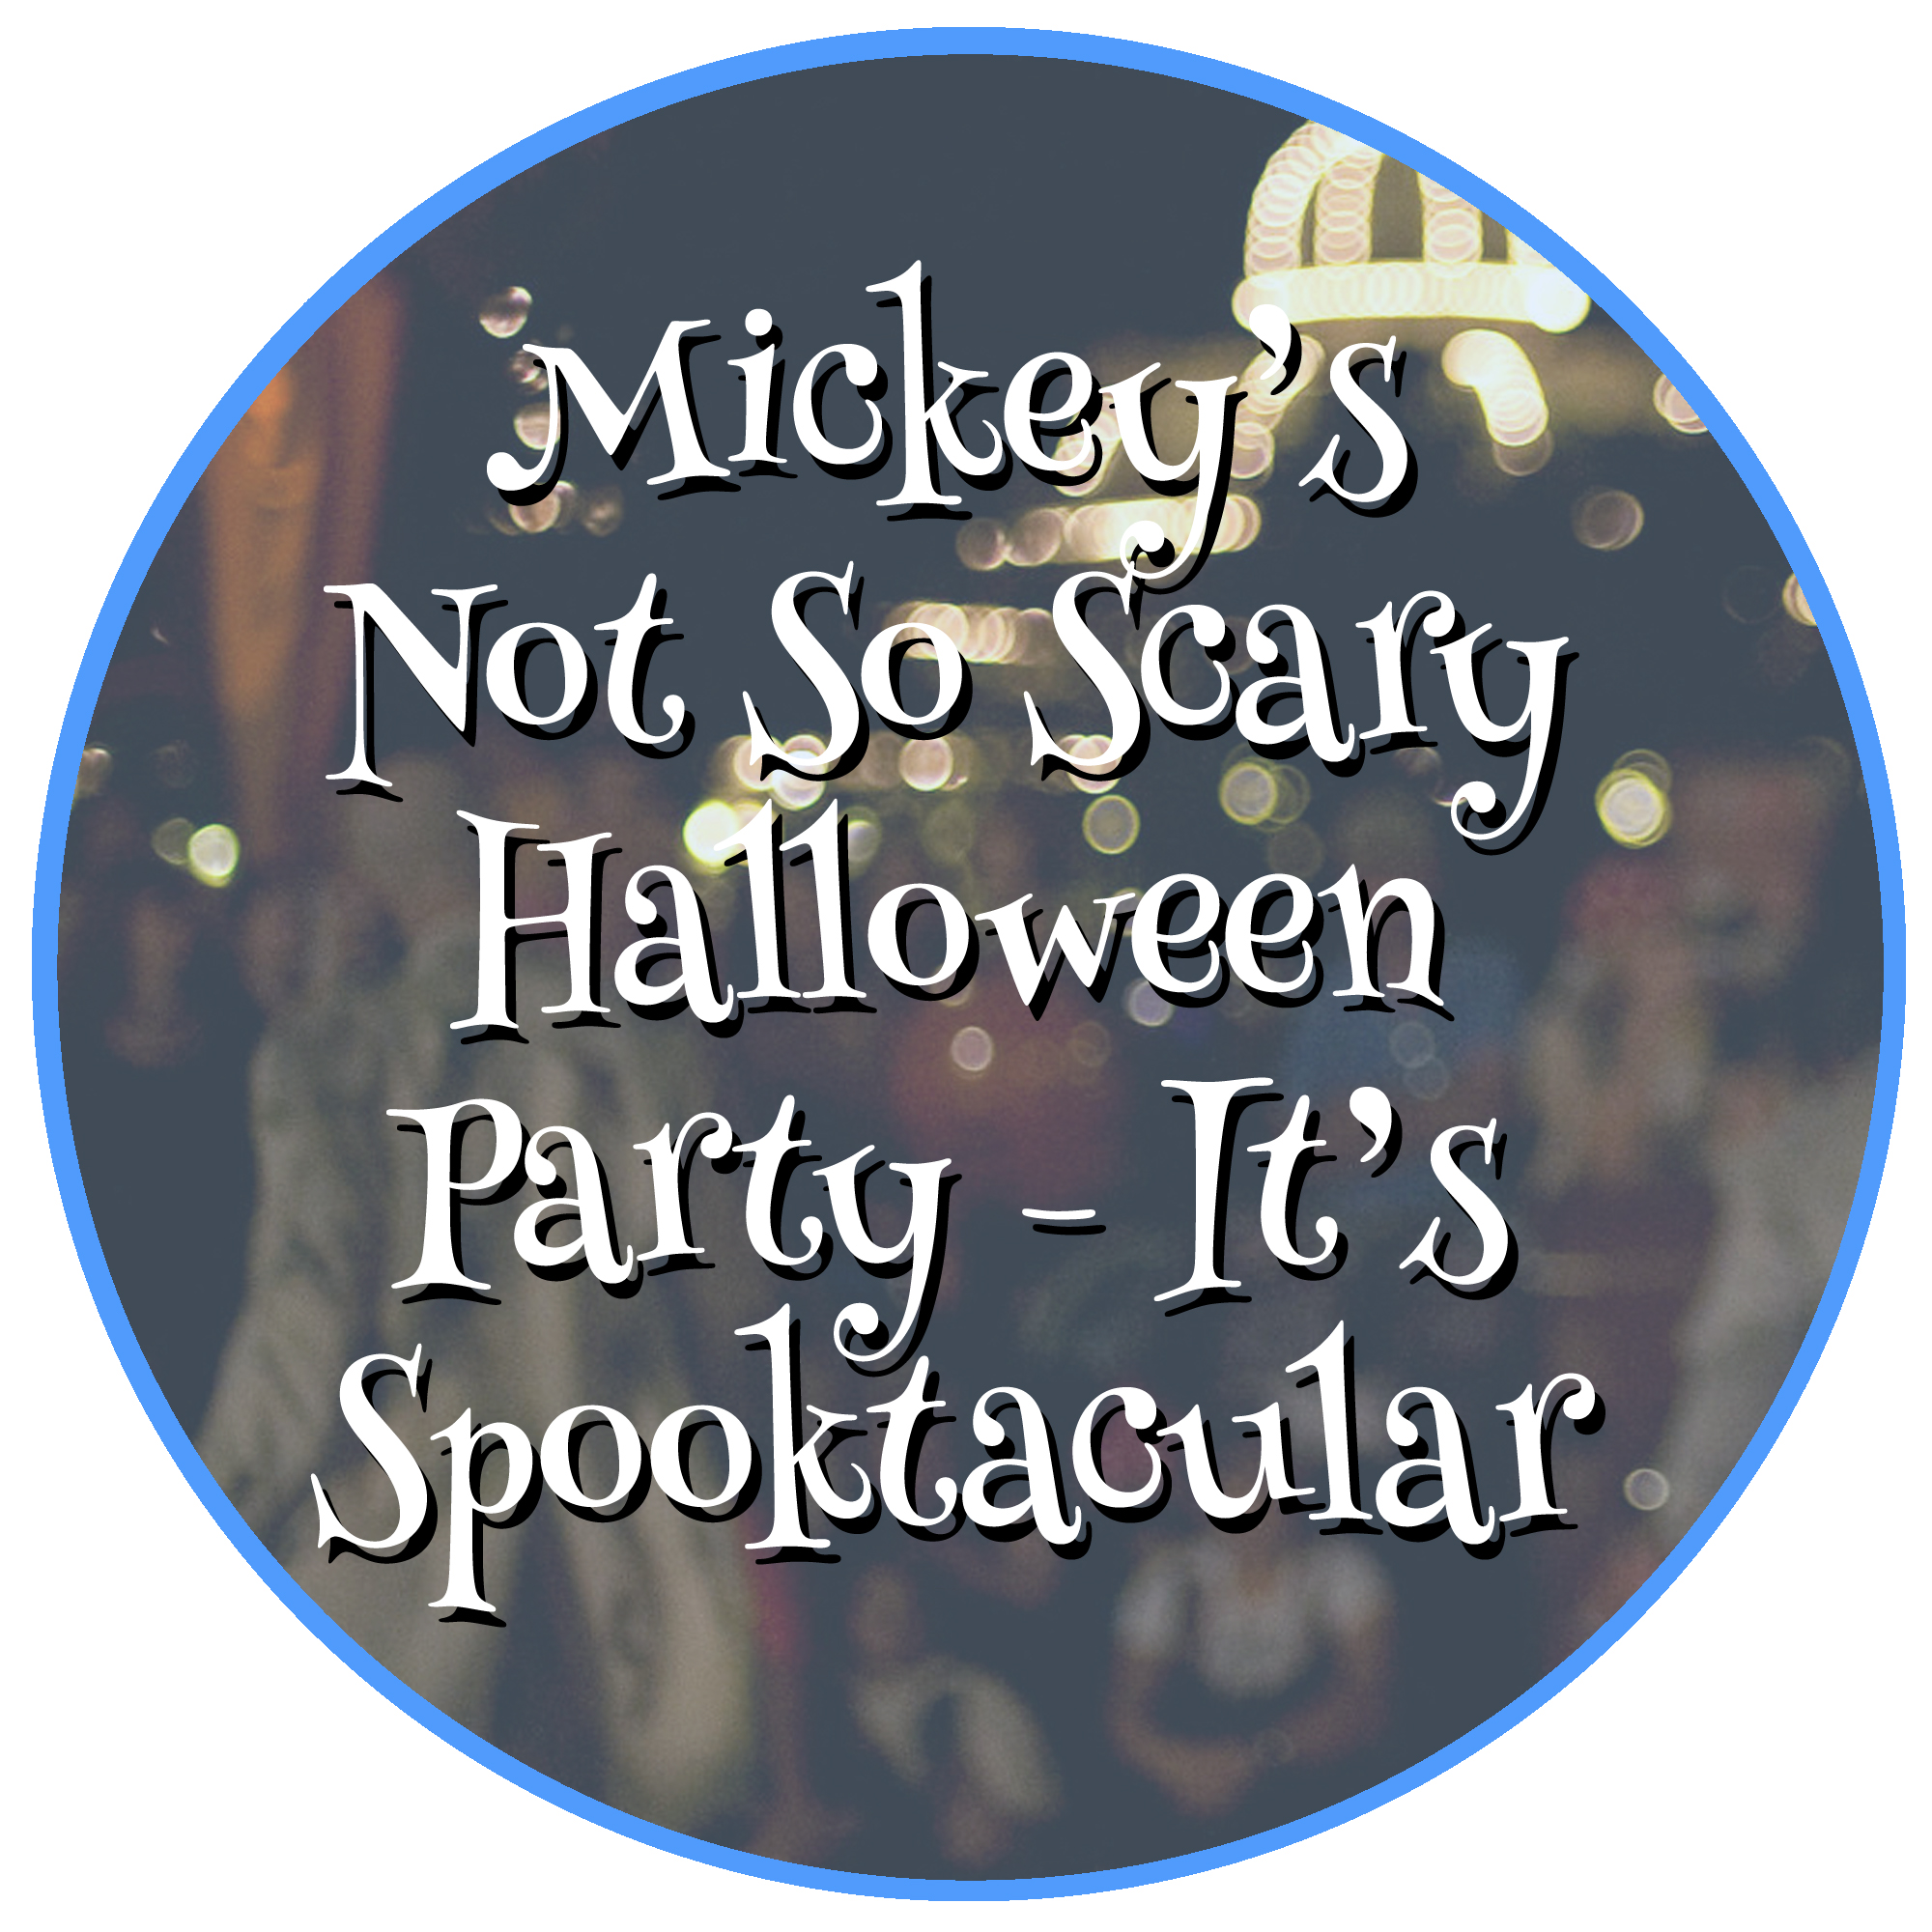 Mickeys no so scary Halloween Party